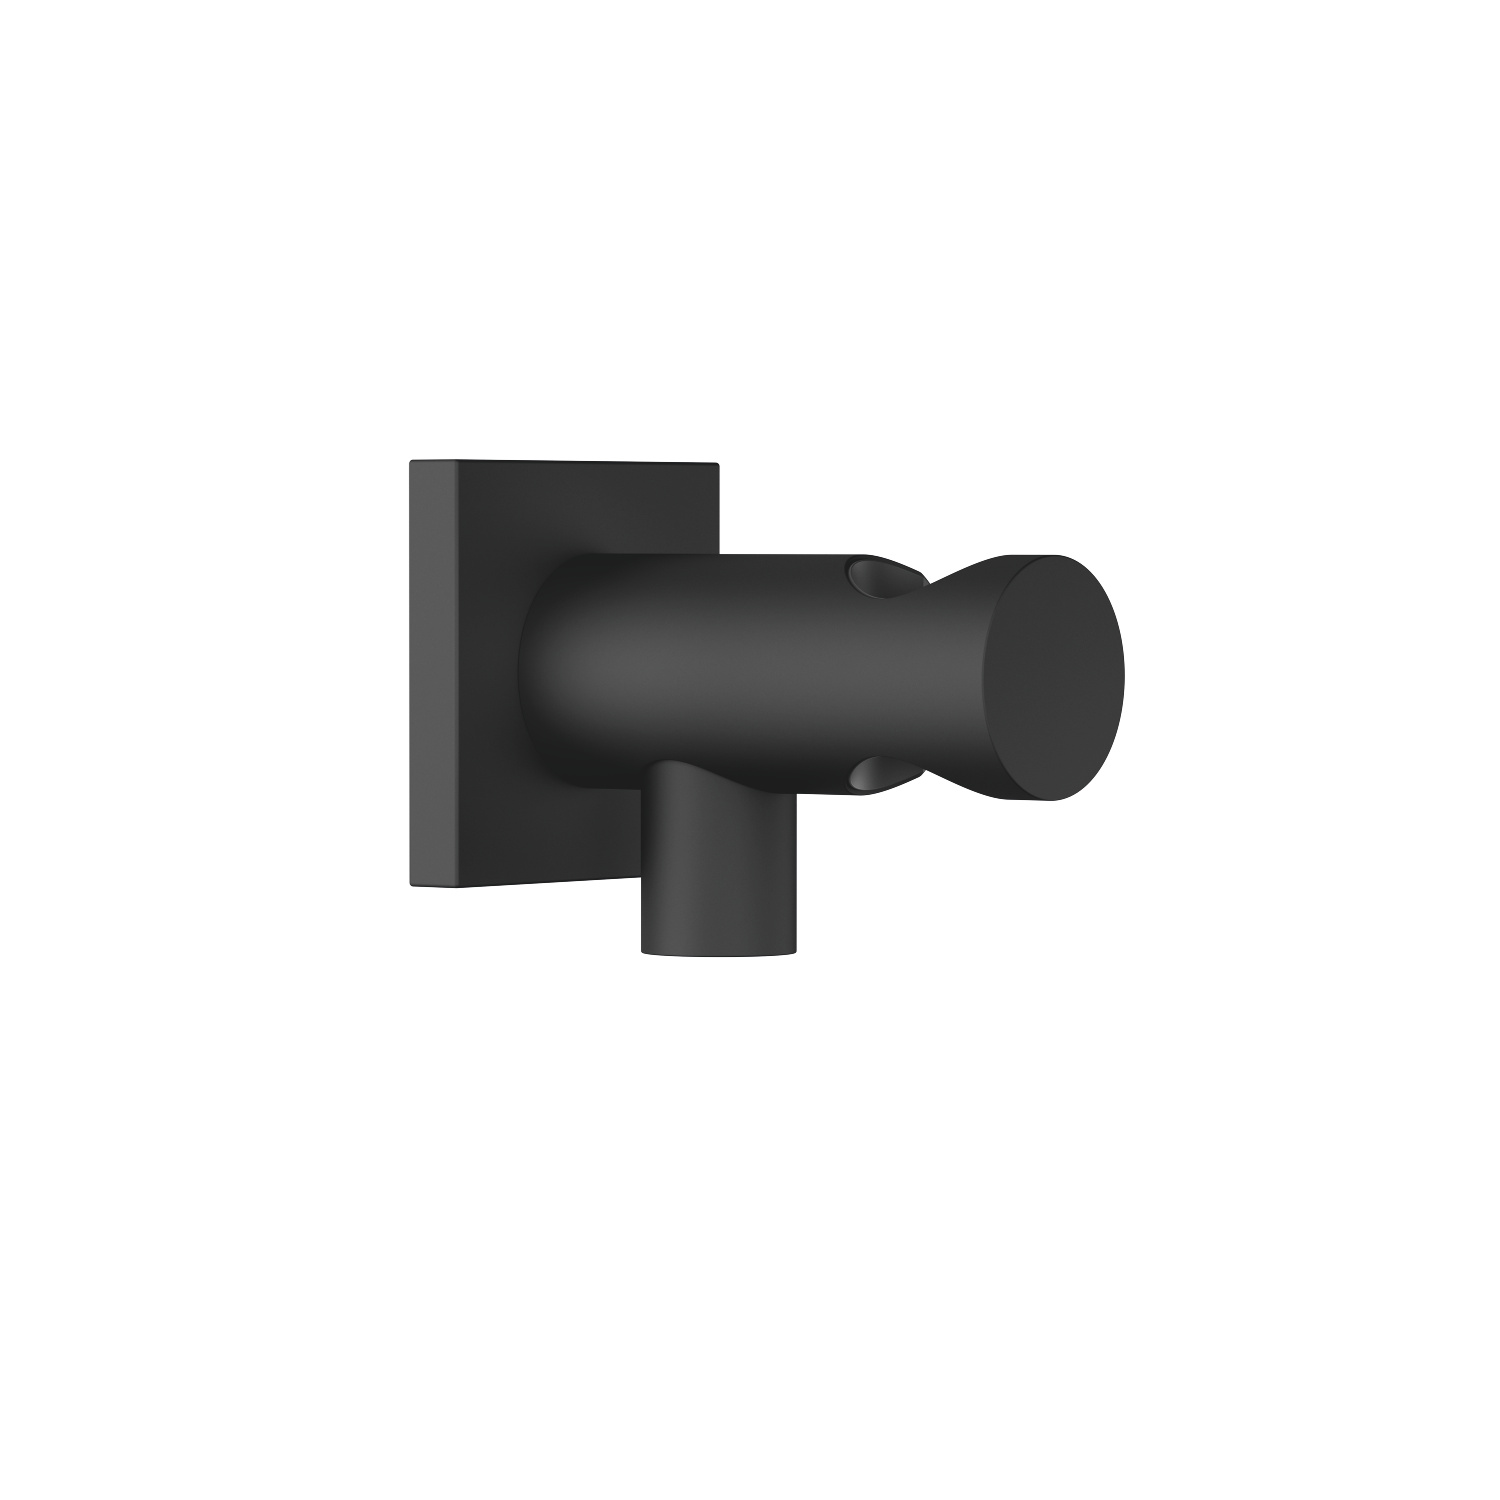 Wall elbow with integrated wall bracket - black matte